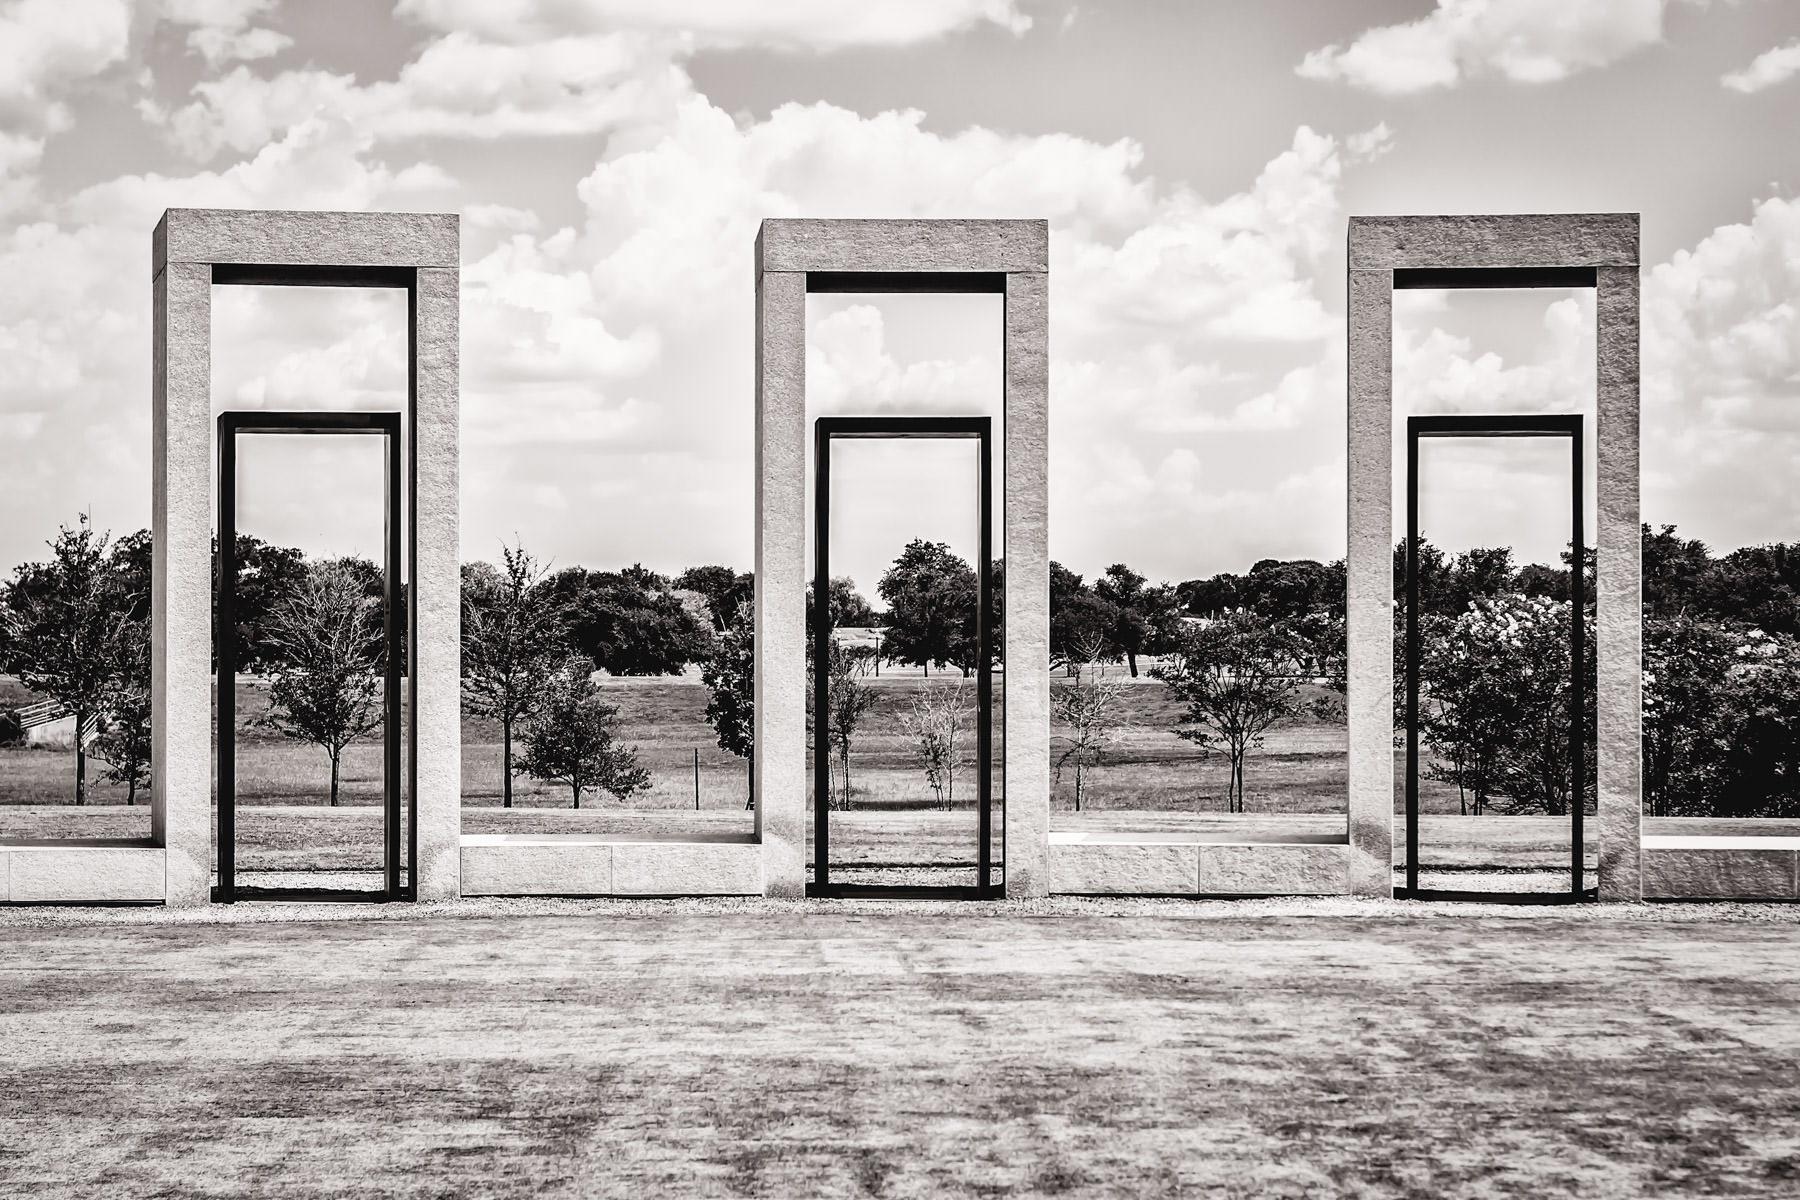 A portion of the Bonfire Memorial at Texas A&M University honoring those who died building the school's annual bonfire on November 18, 1999.